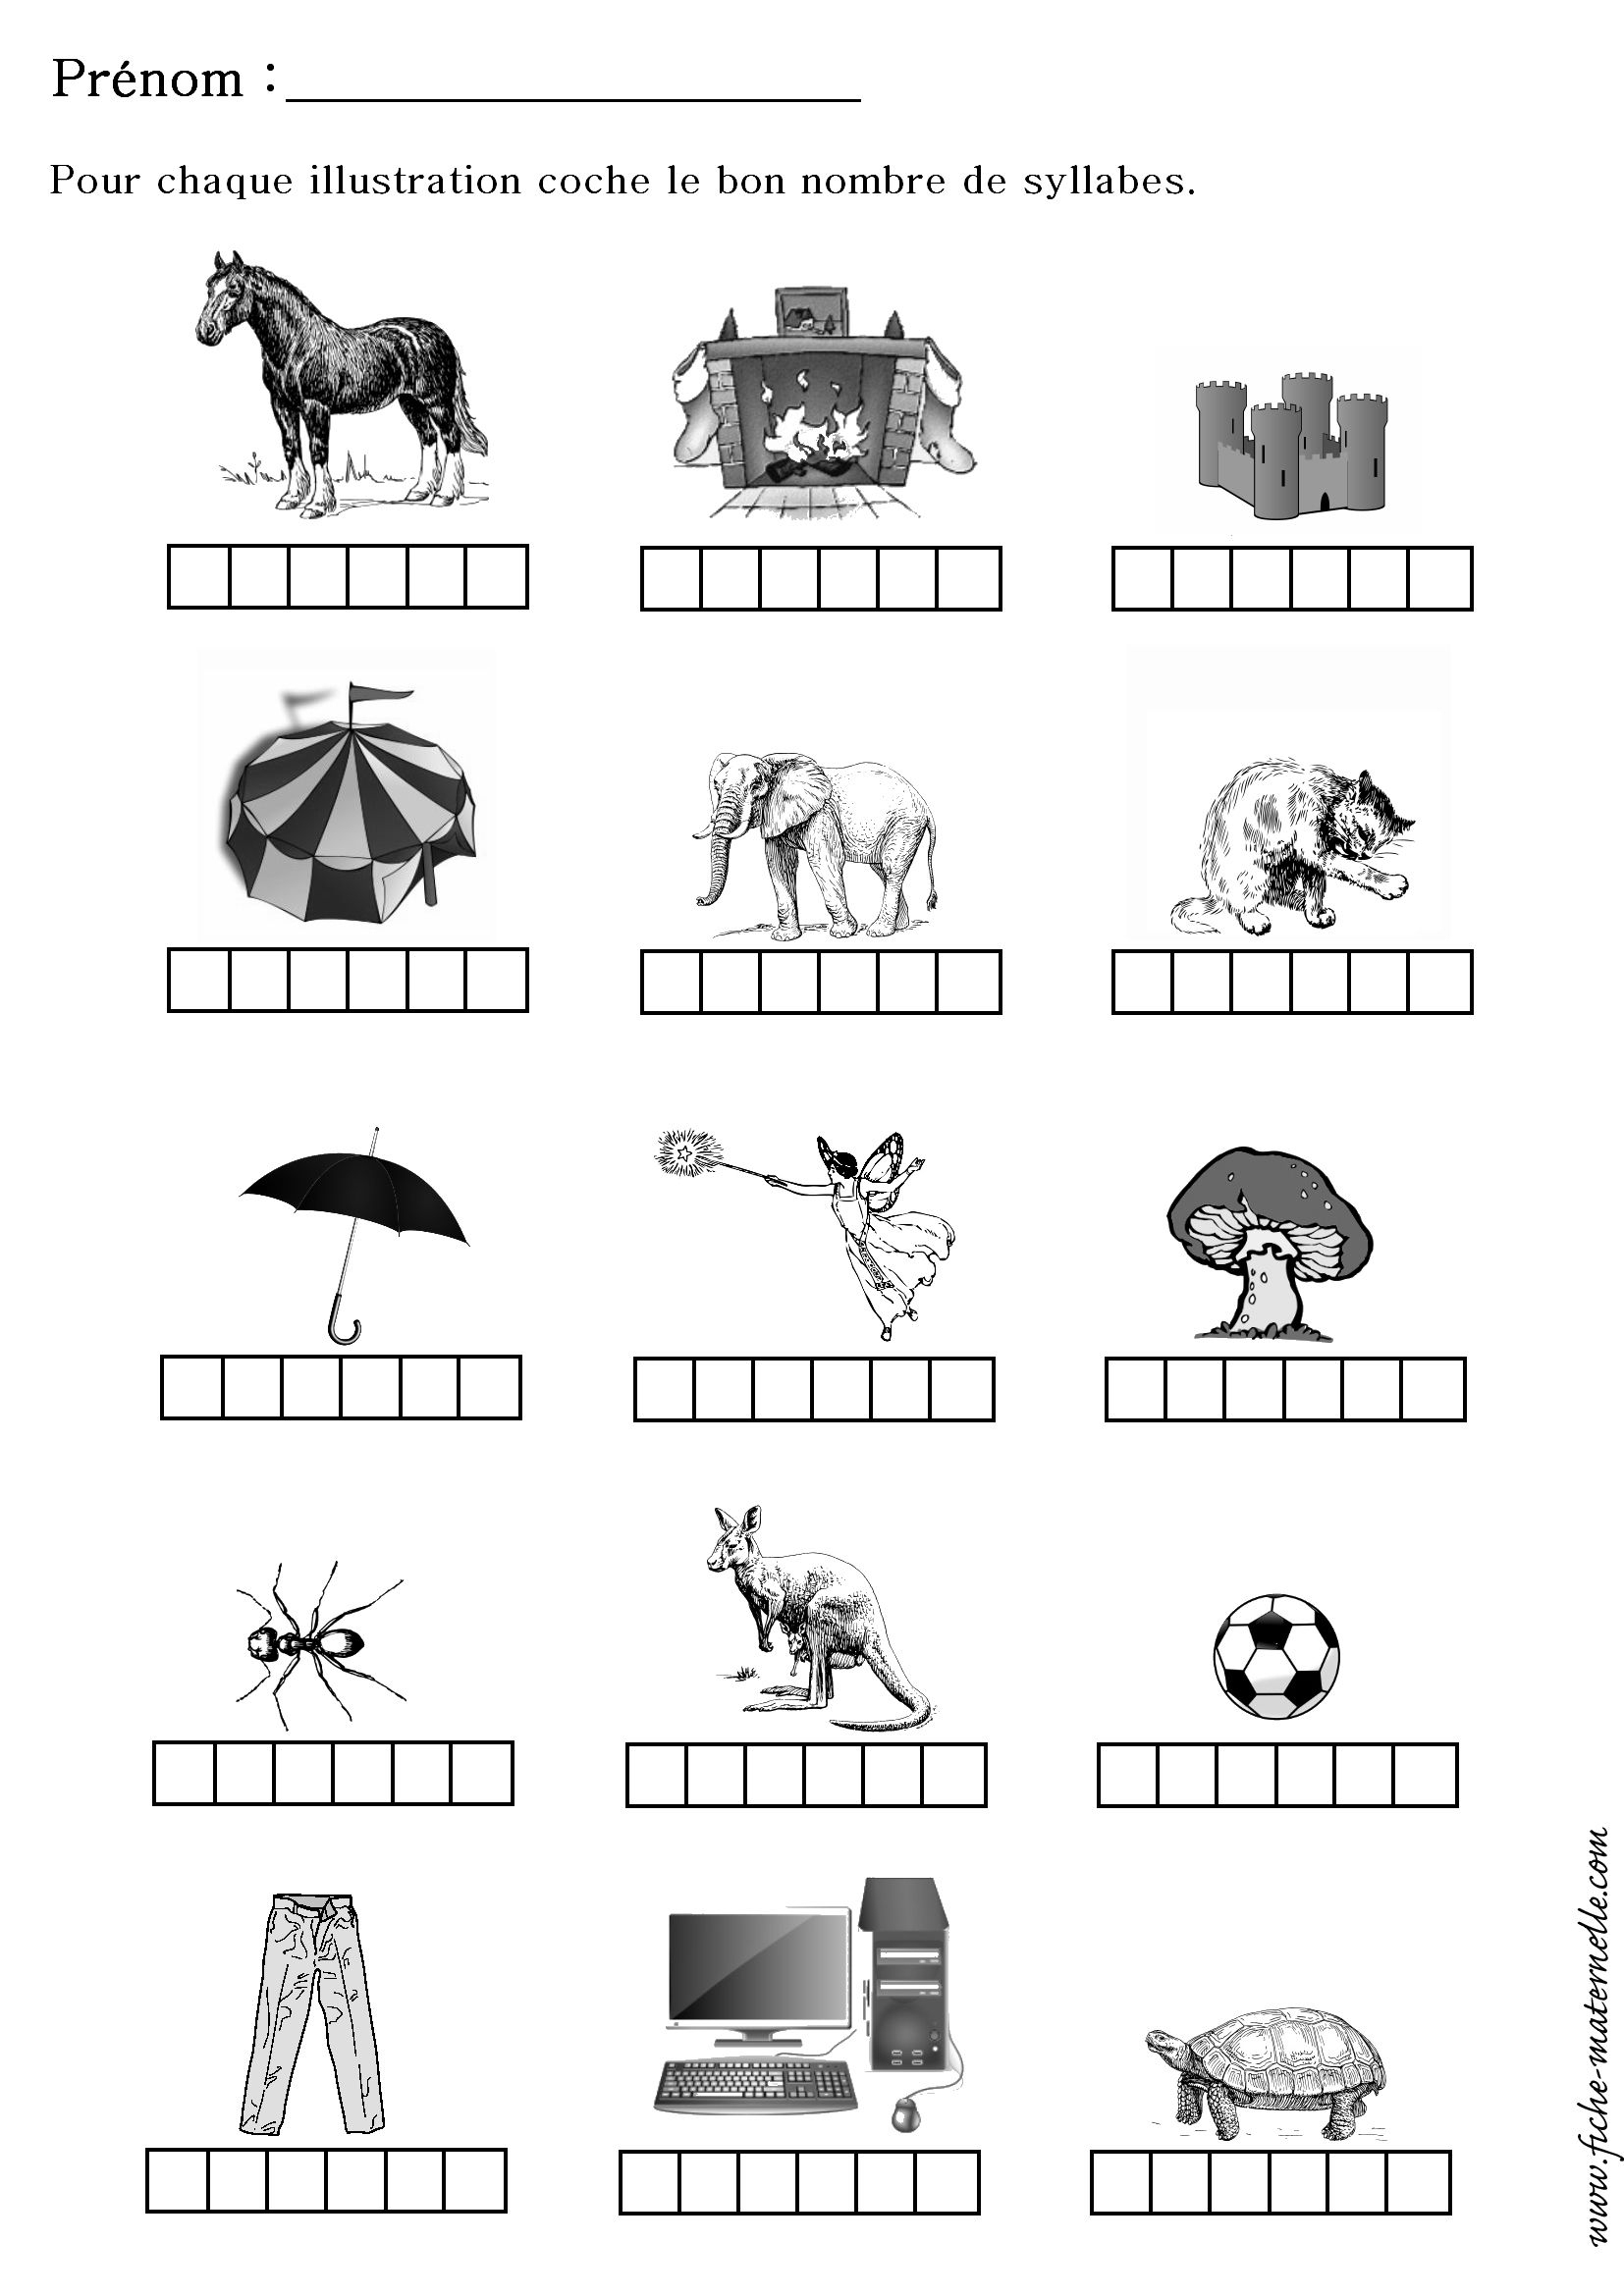 Fiche Exercice Grande Section - Greatestcoloringbook intérieur Exercices Grande Section Maternelle Pdf